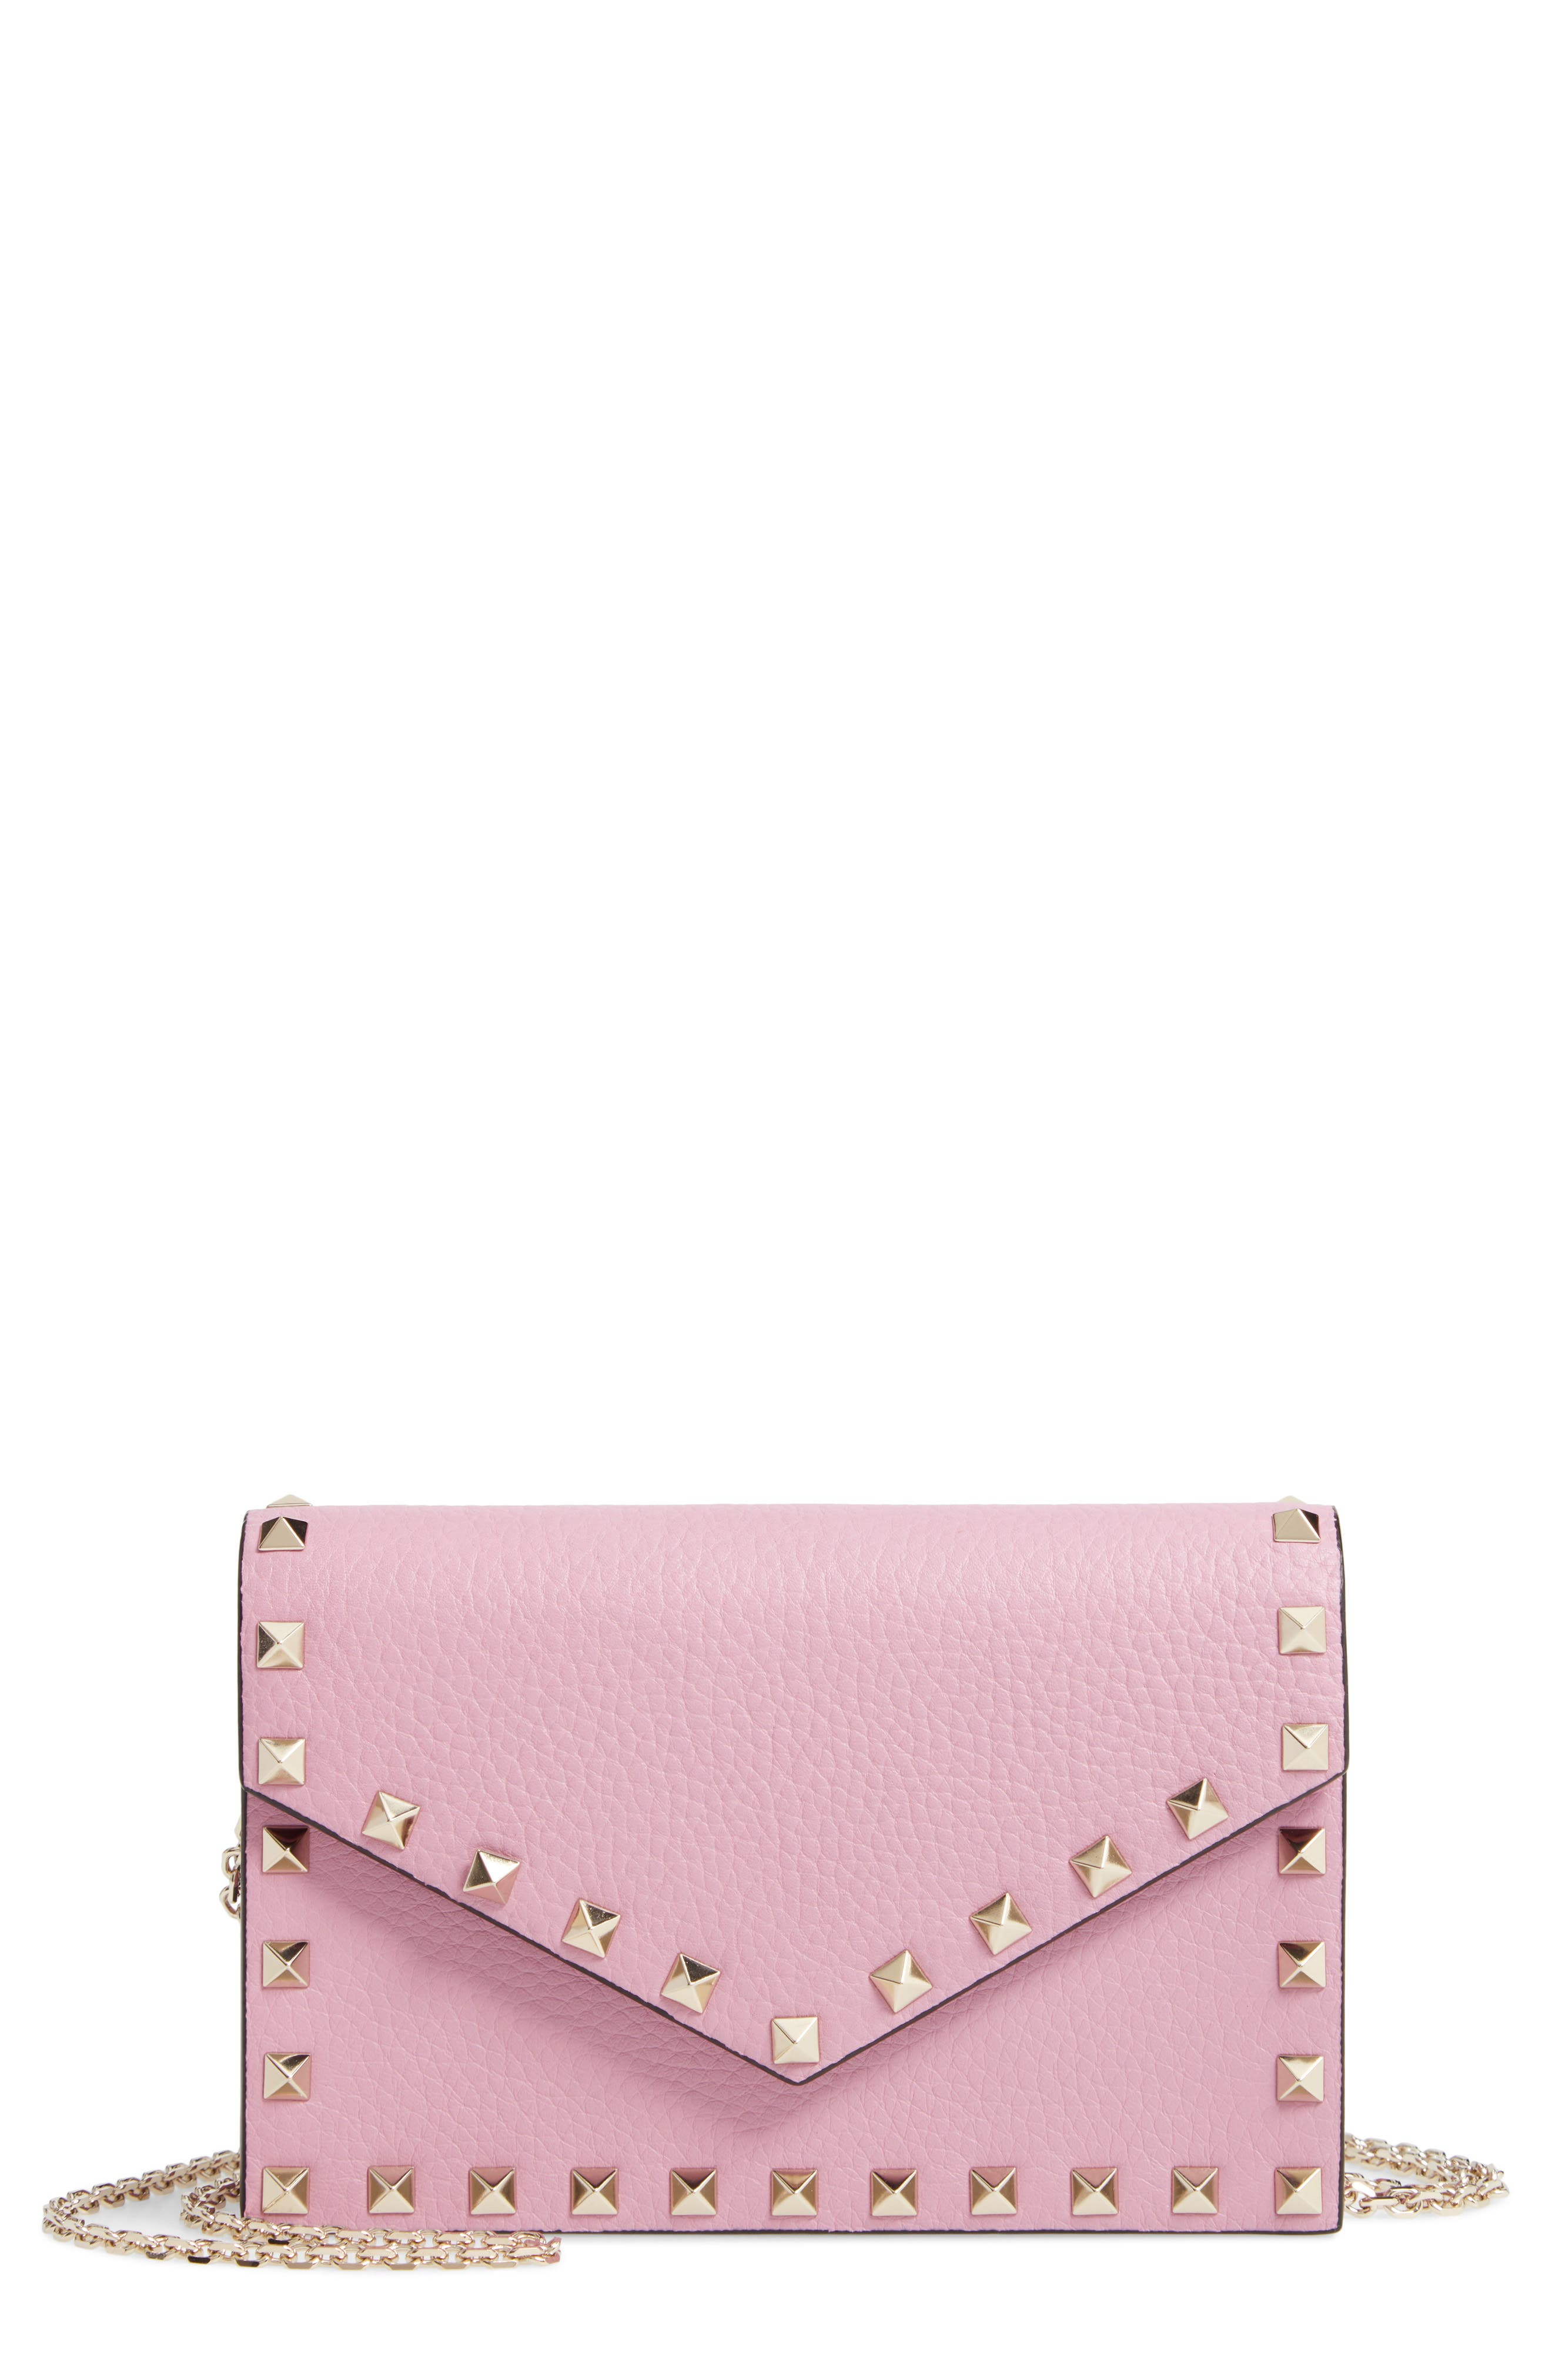 VALENTINO GARAVANI, Rockstud Calfskin Leather Envelope Pouch, Main thumbnail 1, color, GIACINTO